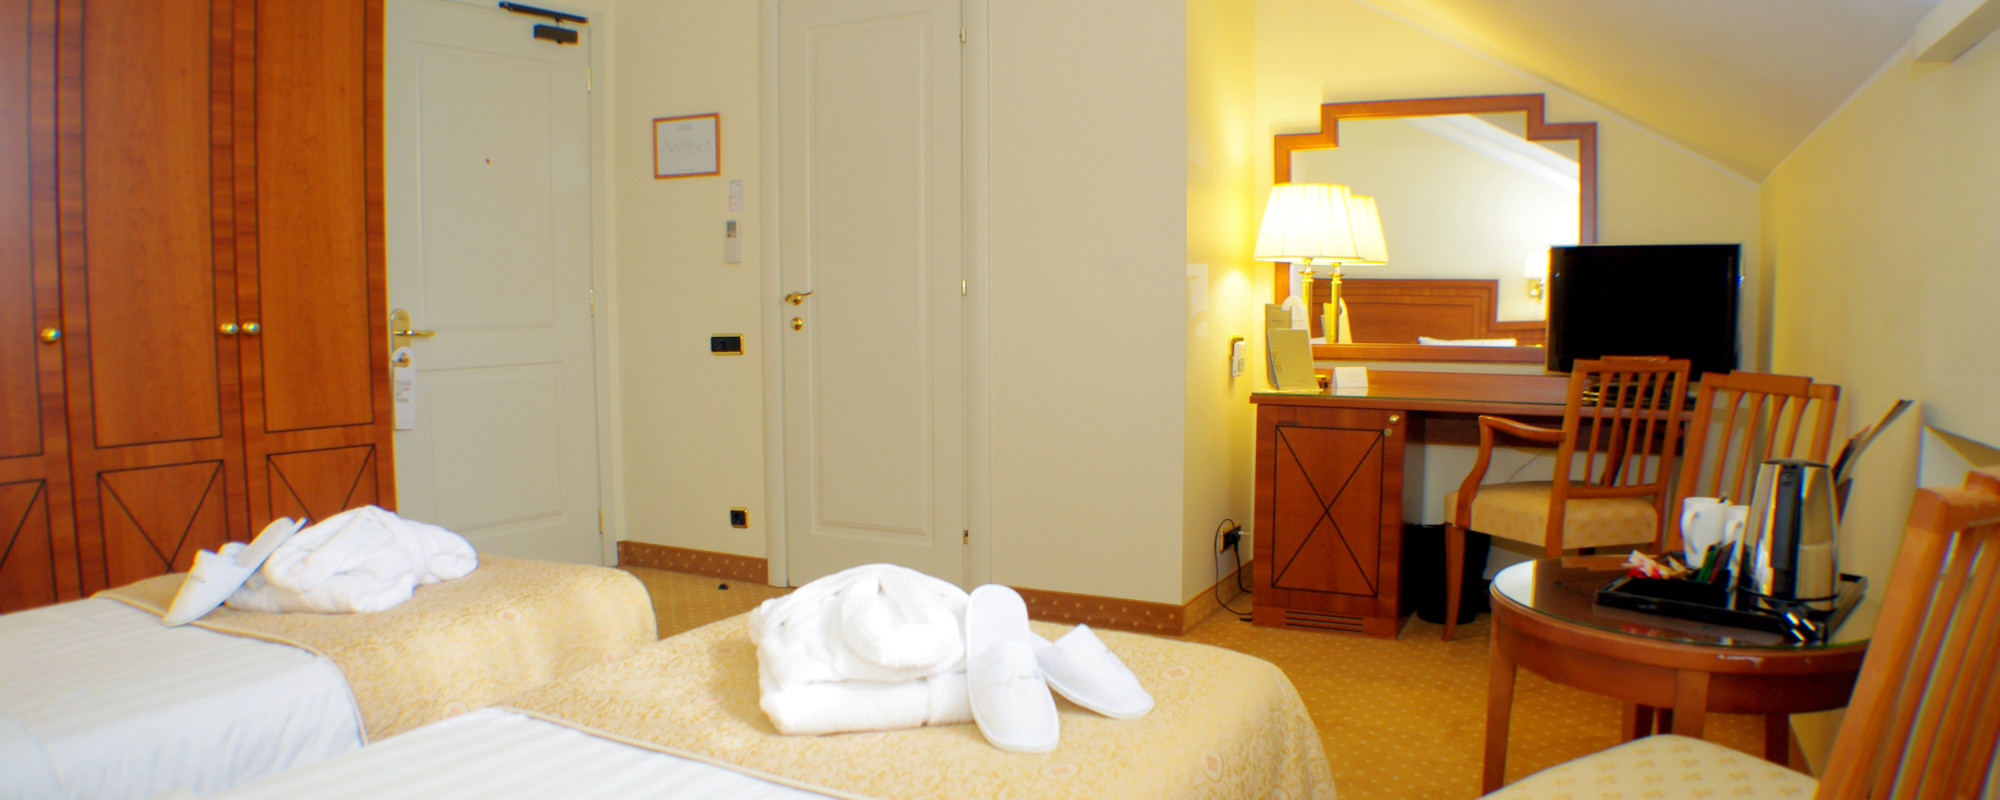 Superior twin room at the 5th floor of the hotel